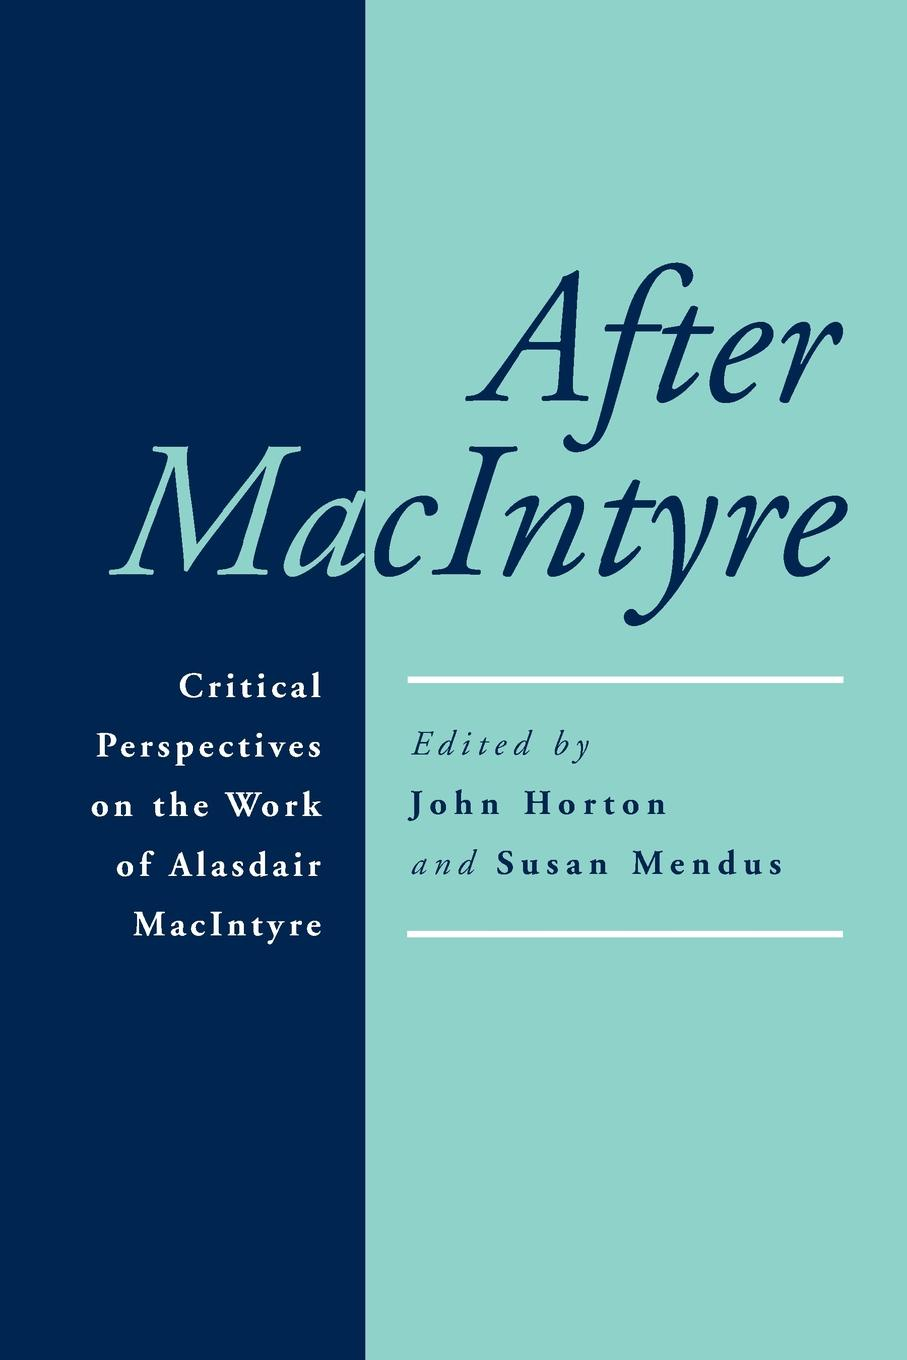 After MacIntyre. Critical Perspectives on the Work of Alasdair MacIntyre ben macintyre the napoleon of crime the life and times of adam worth the real moriarty